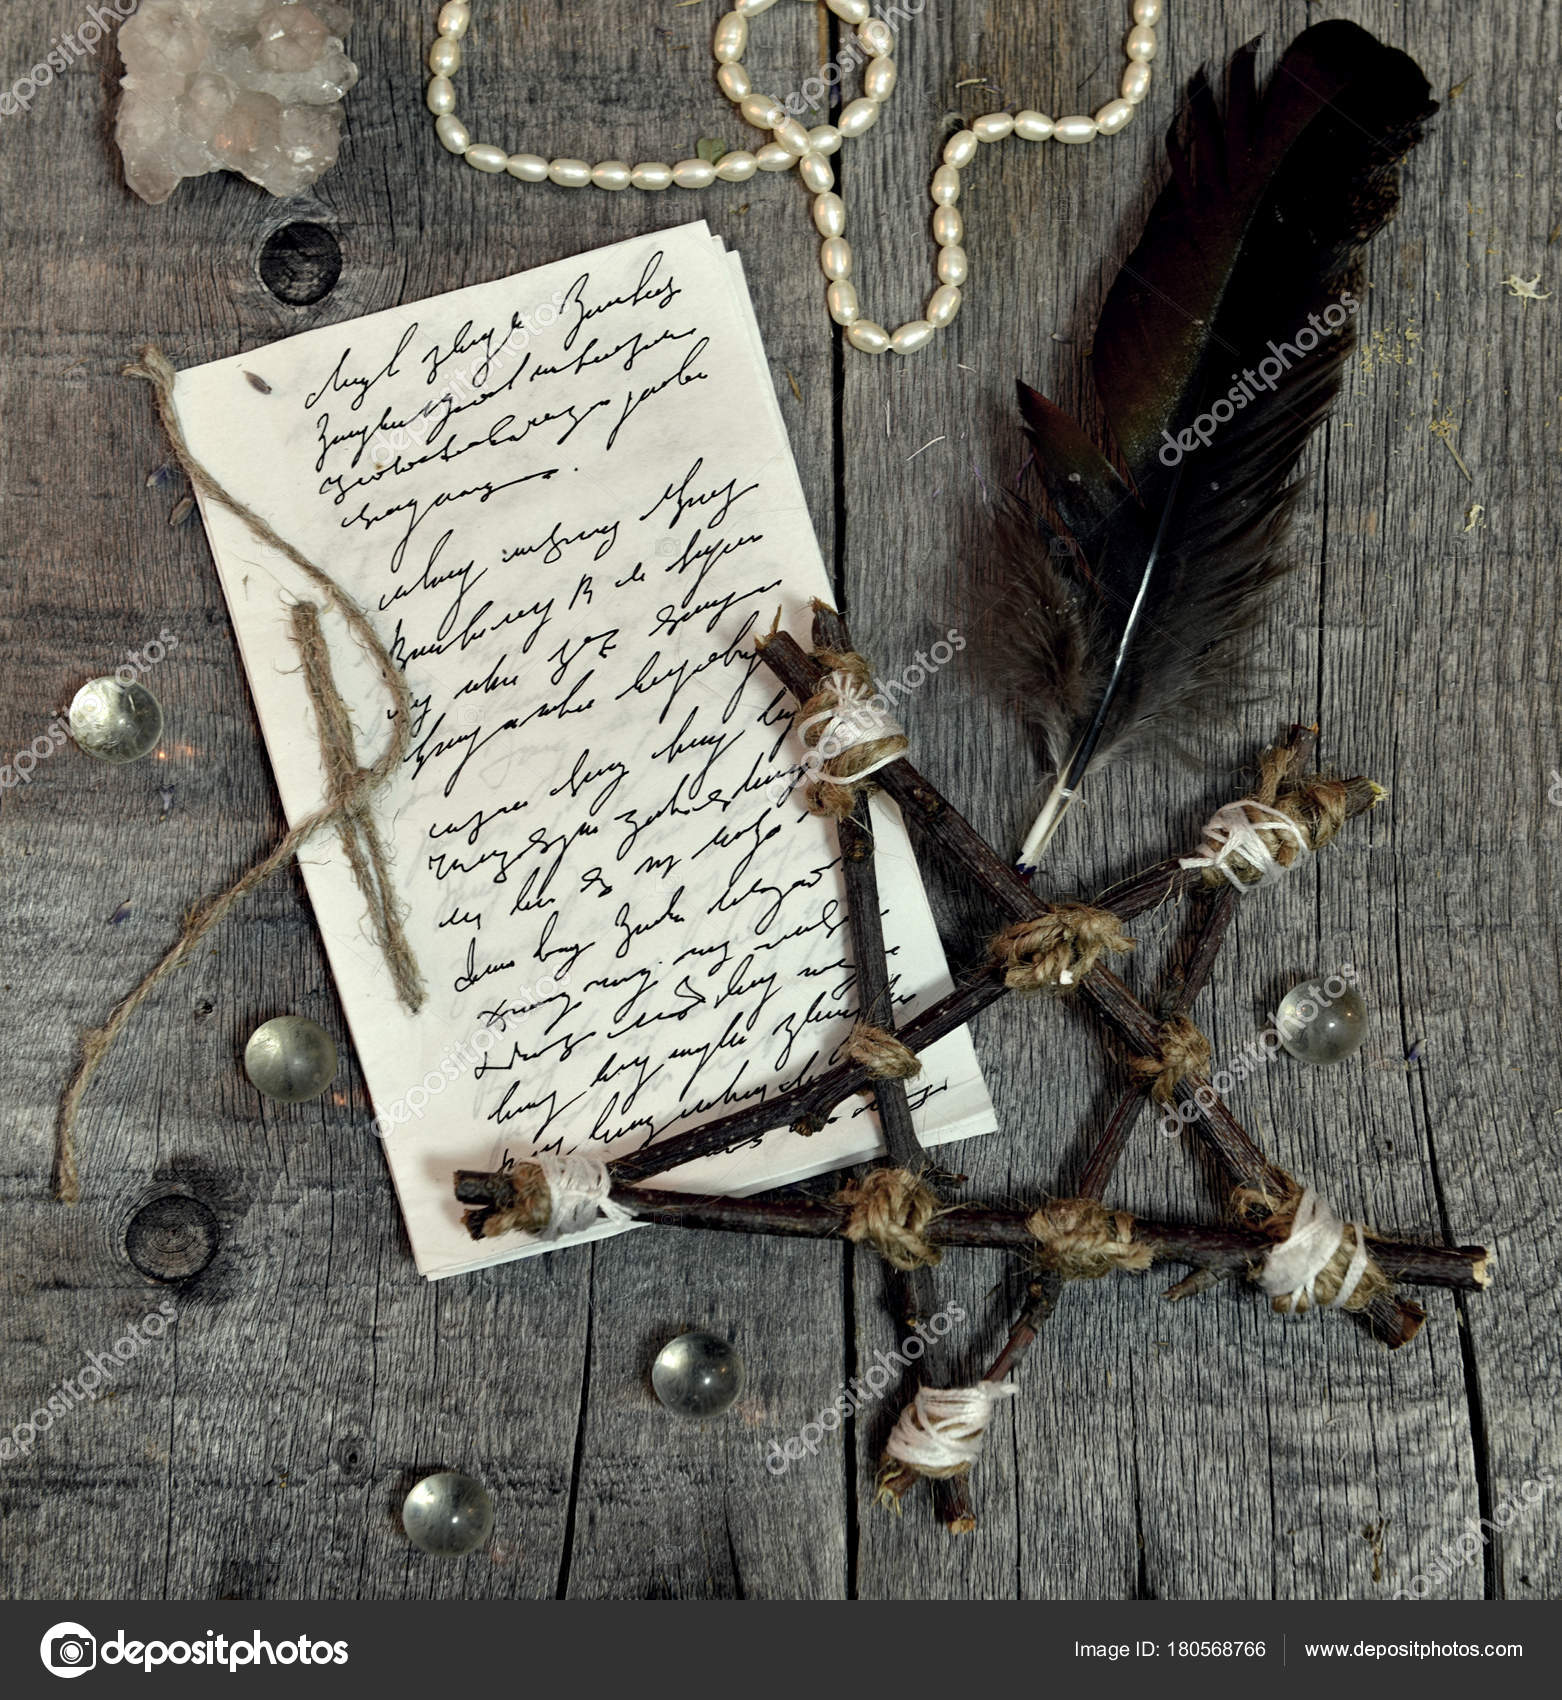 Paper manuscript hand written text pentagram quill planks occult occult esoteric divination and wicca concept halloween vintage background no foreign text all symbols on pages are fantasy imaginary ones biocorpaavc